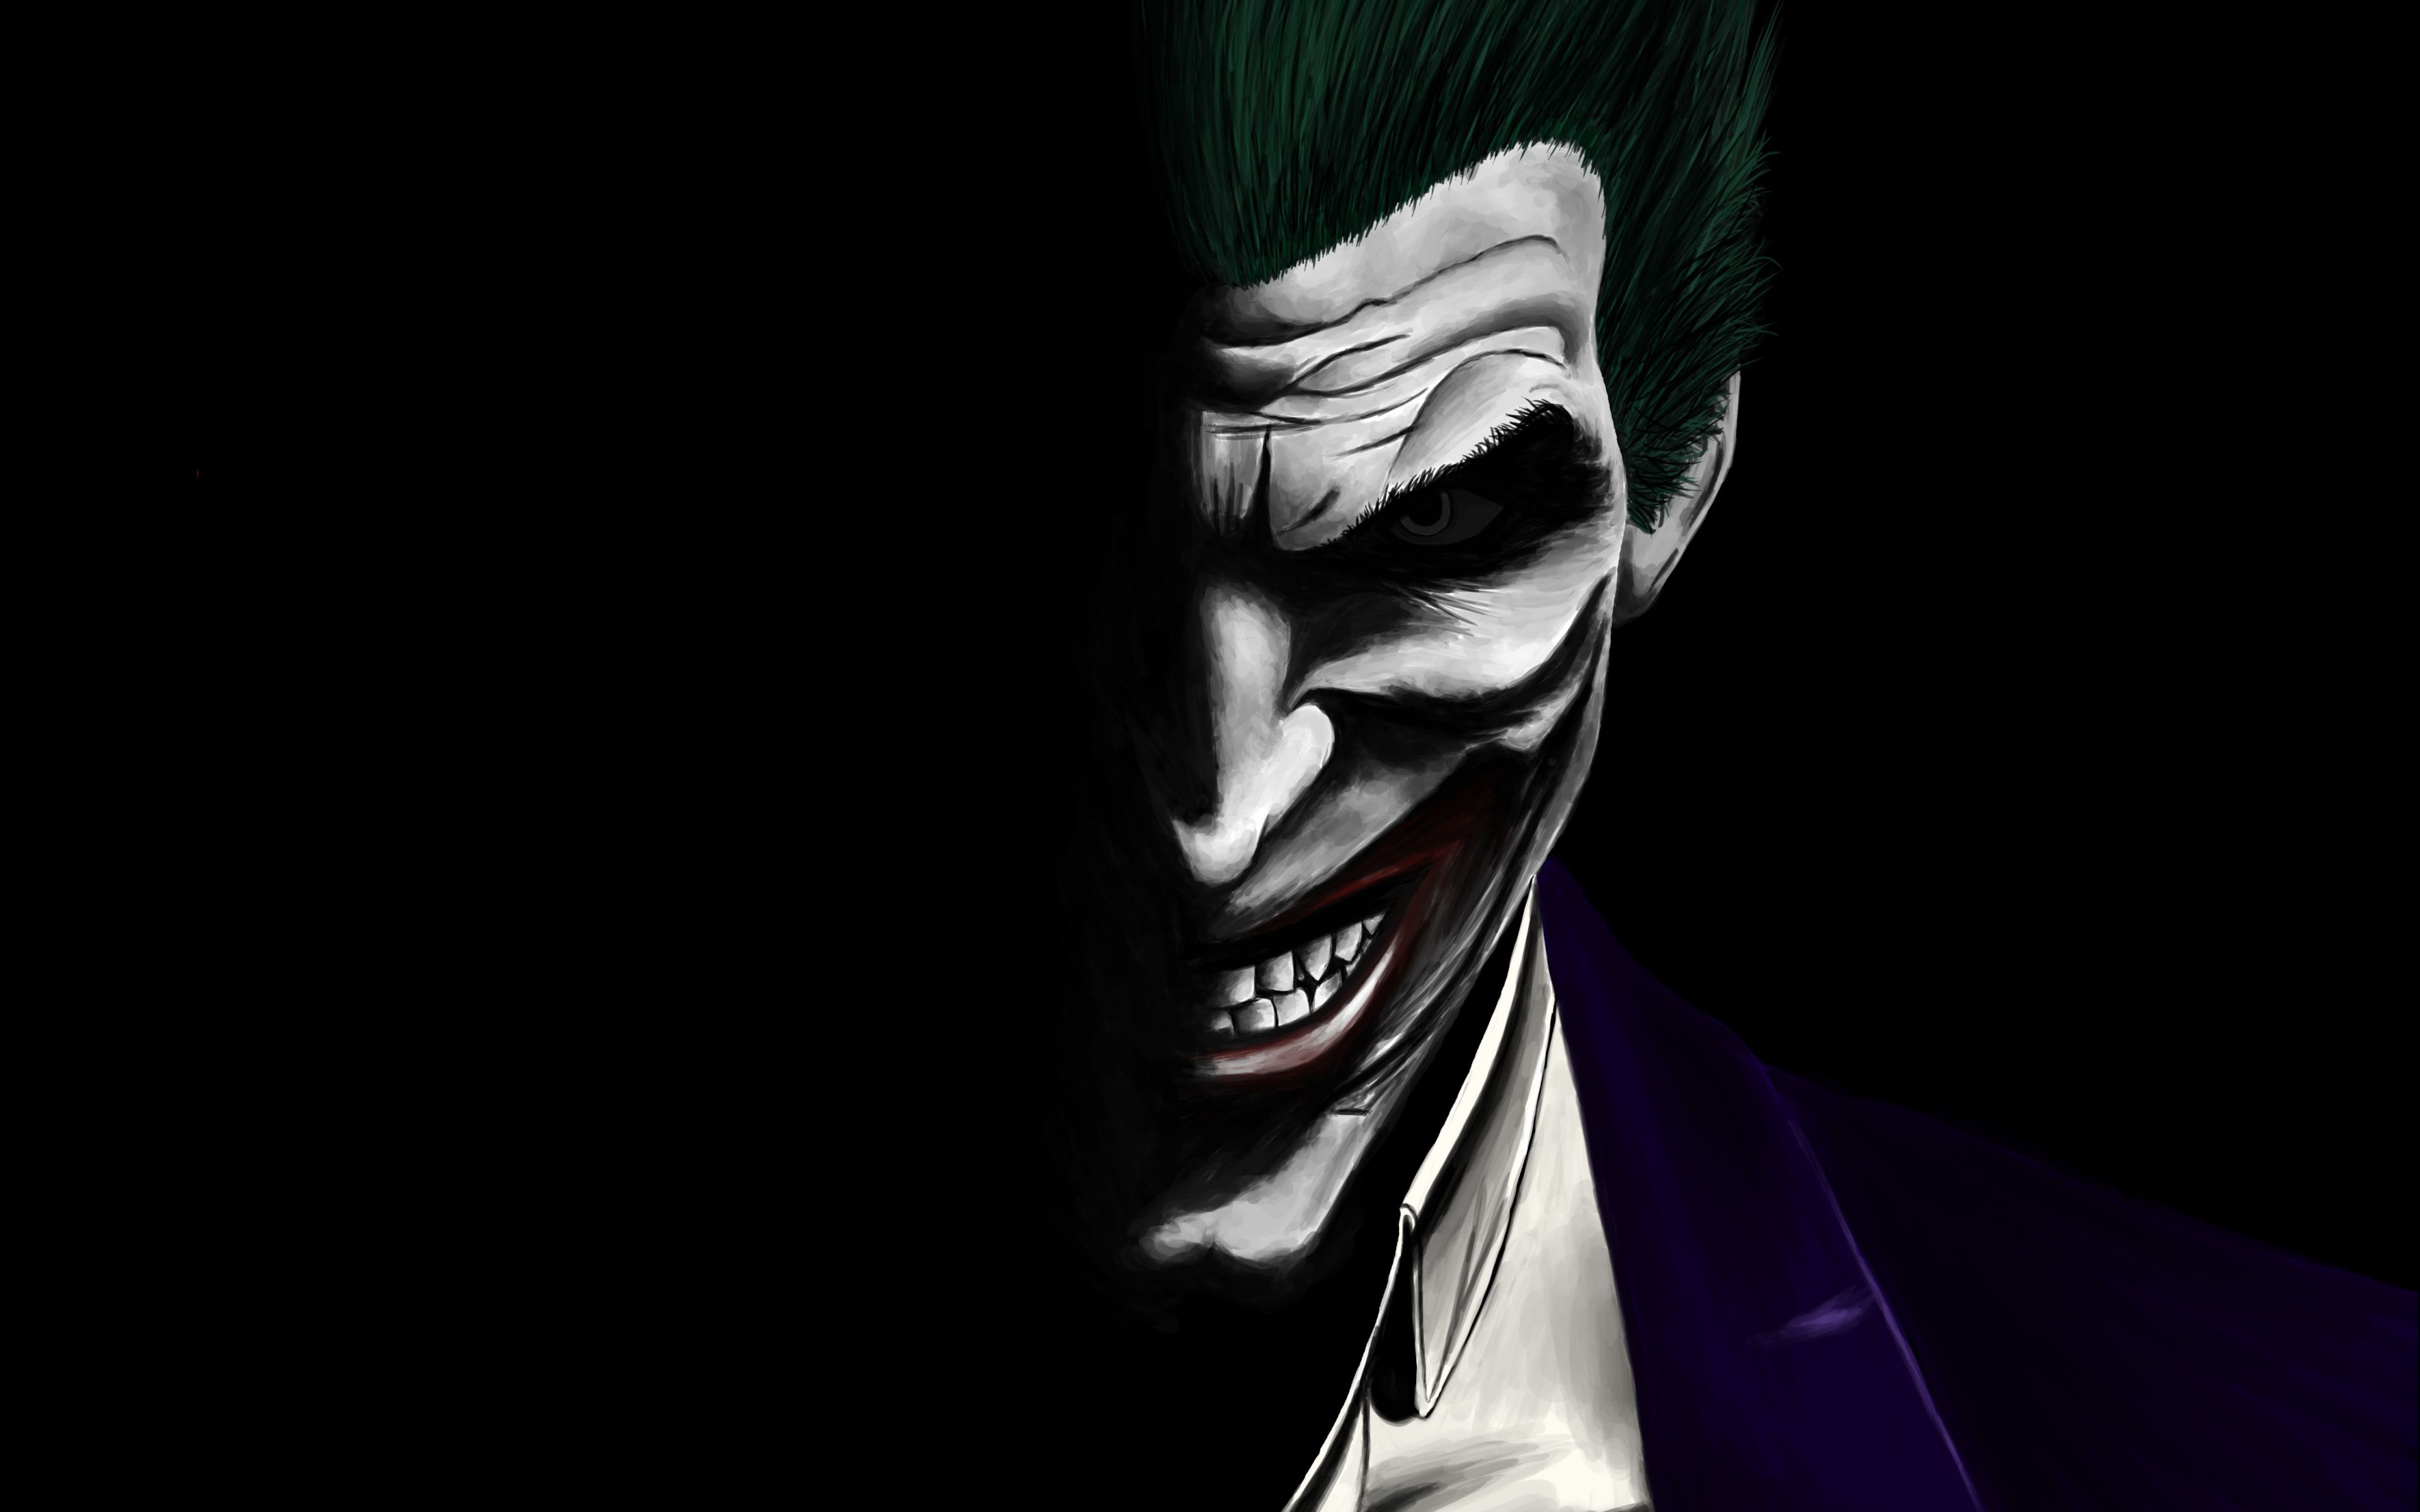 Download 3840x2400 Wallpaper Joker Dark Dc Comics Villain Artwork 4k Ultra Hd 16 10 Widescreen 3840x2400 Hd Joker Wallpapers Joker Images Joker Artwork